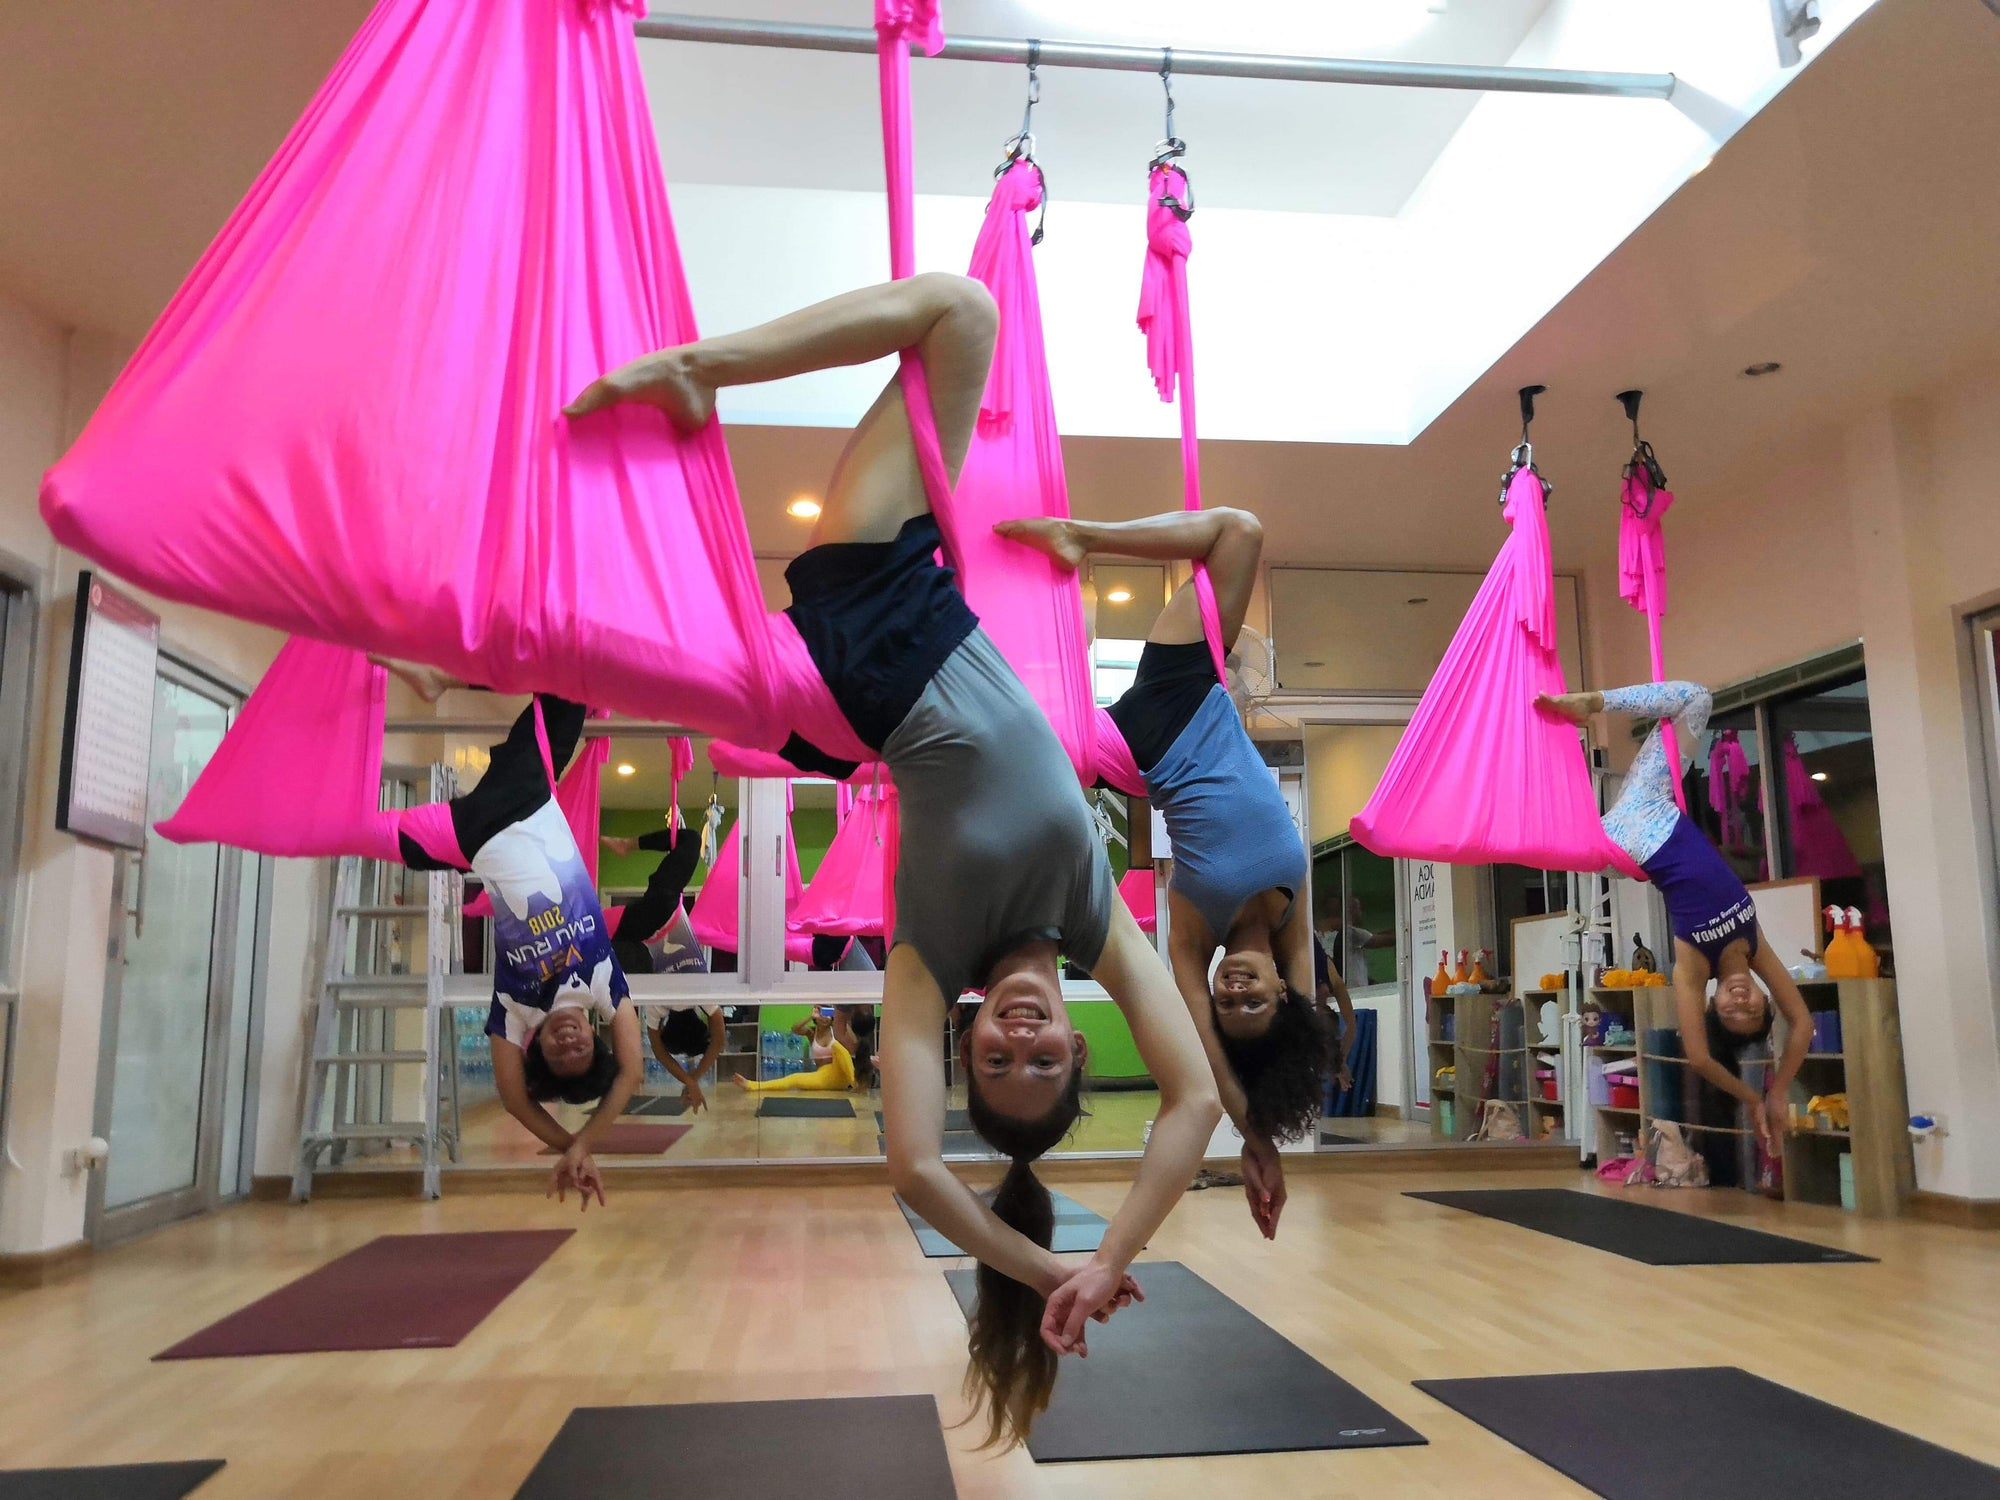 Ladies in Aerial Yoga Class Pink Yoga Hammock